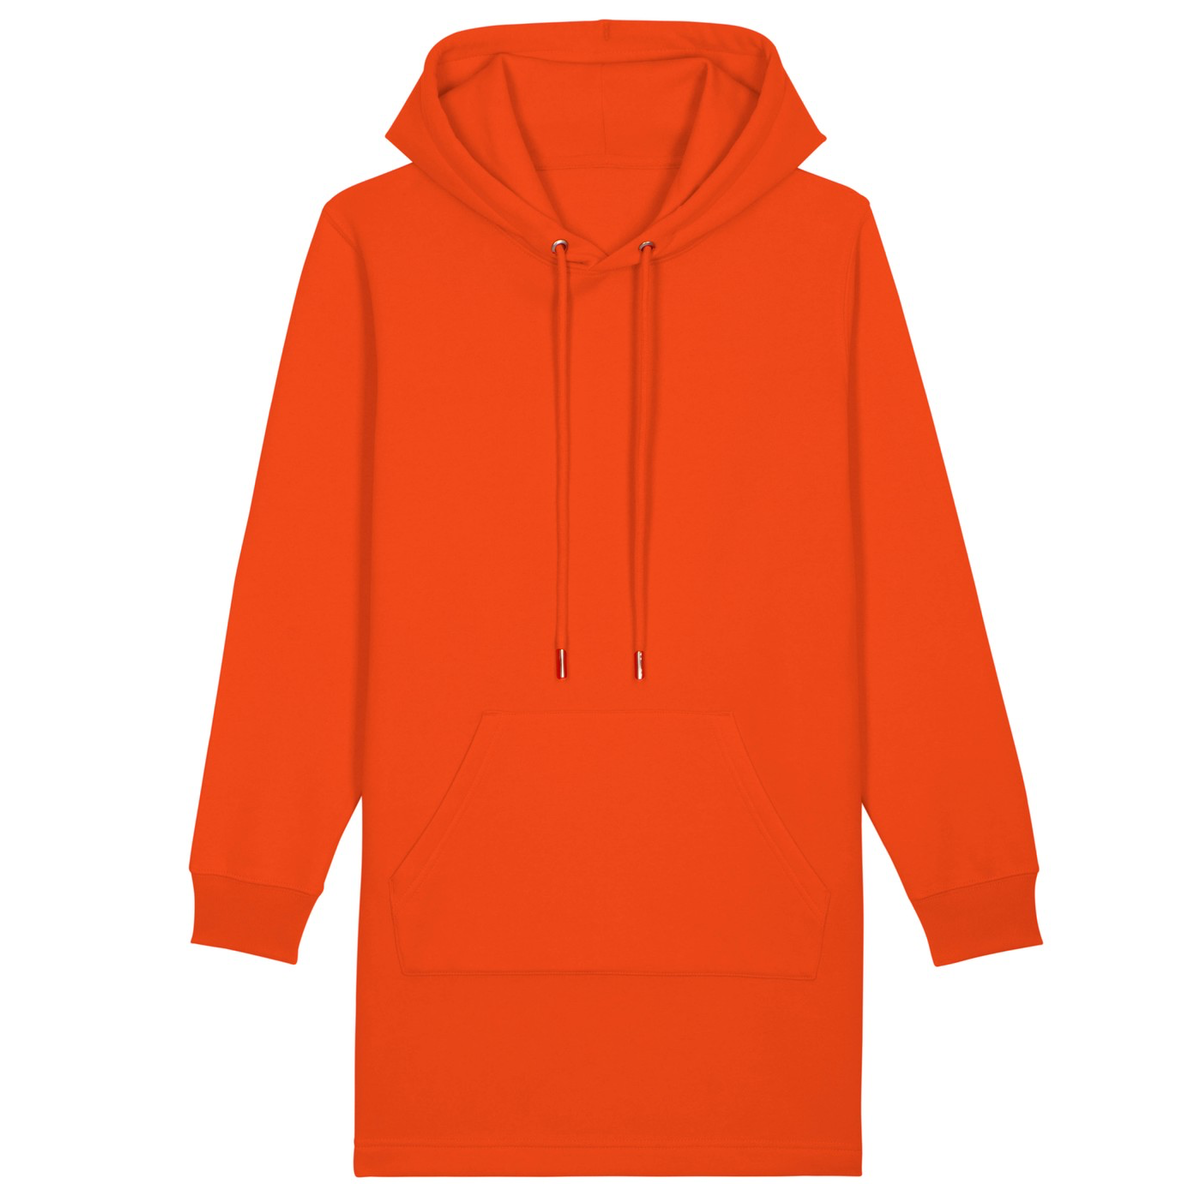 Robe Hoodie Stanley/Stella - BIO - STREETER- Print on demand from Europe | T-Pop